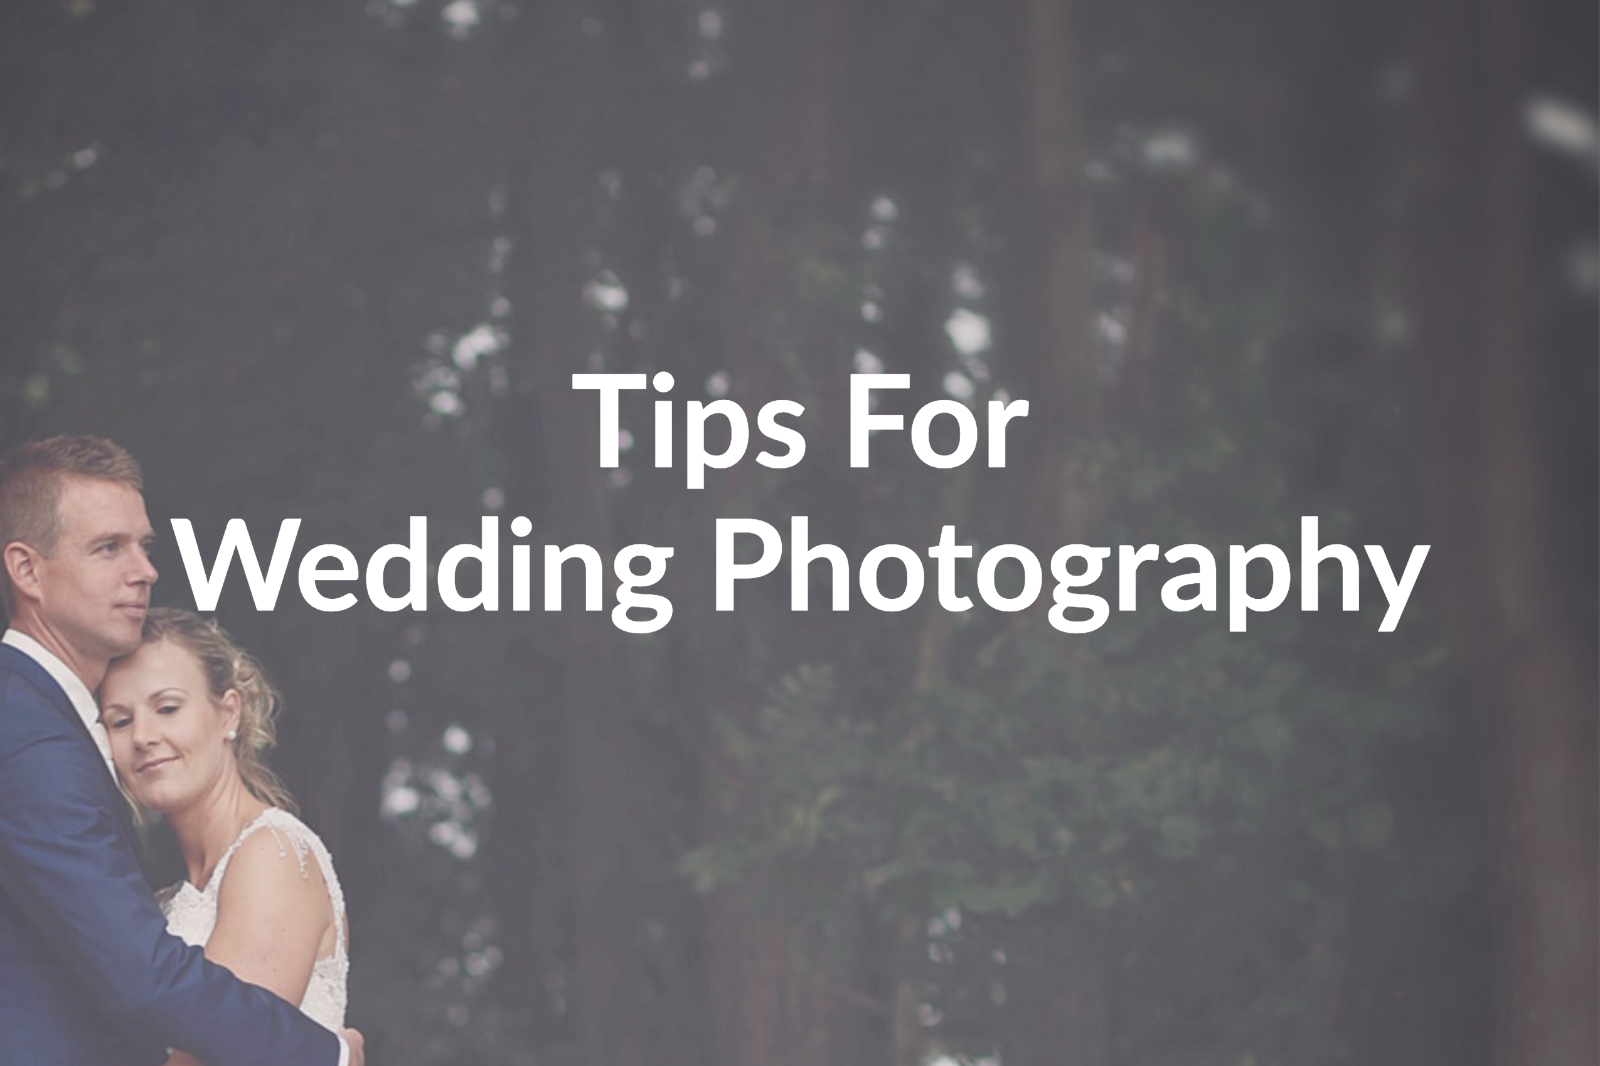 Wedding photography tips PDF ebook with MRR 4